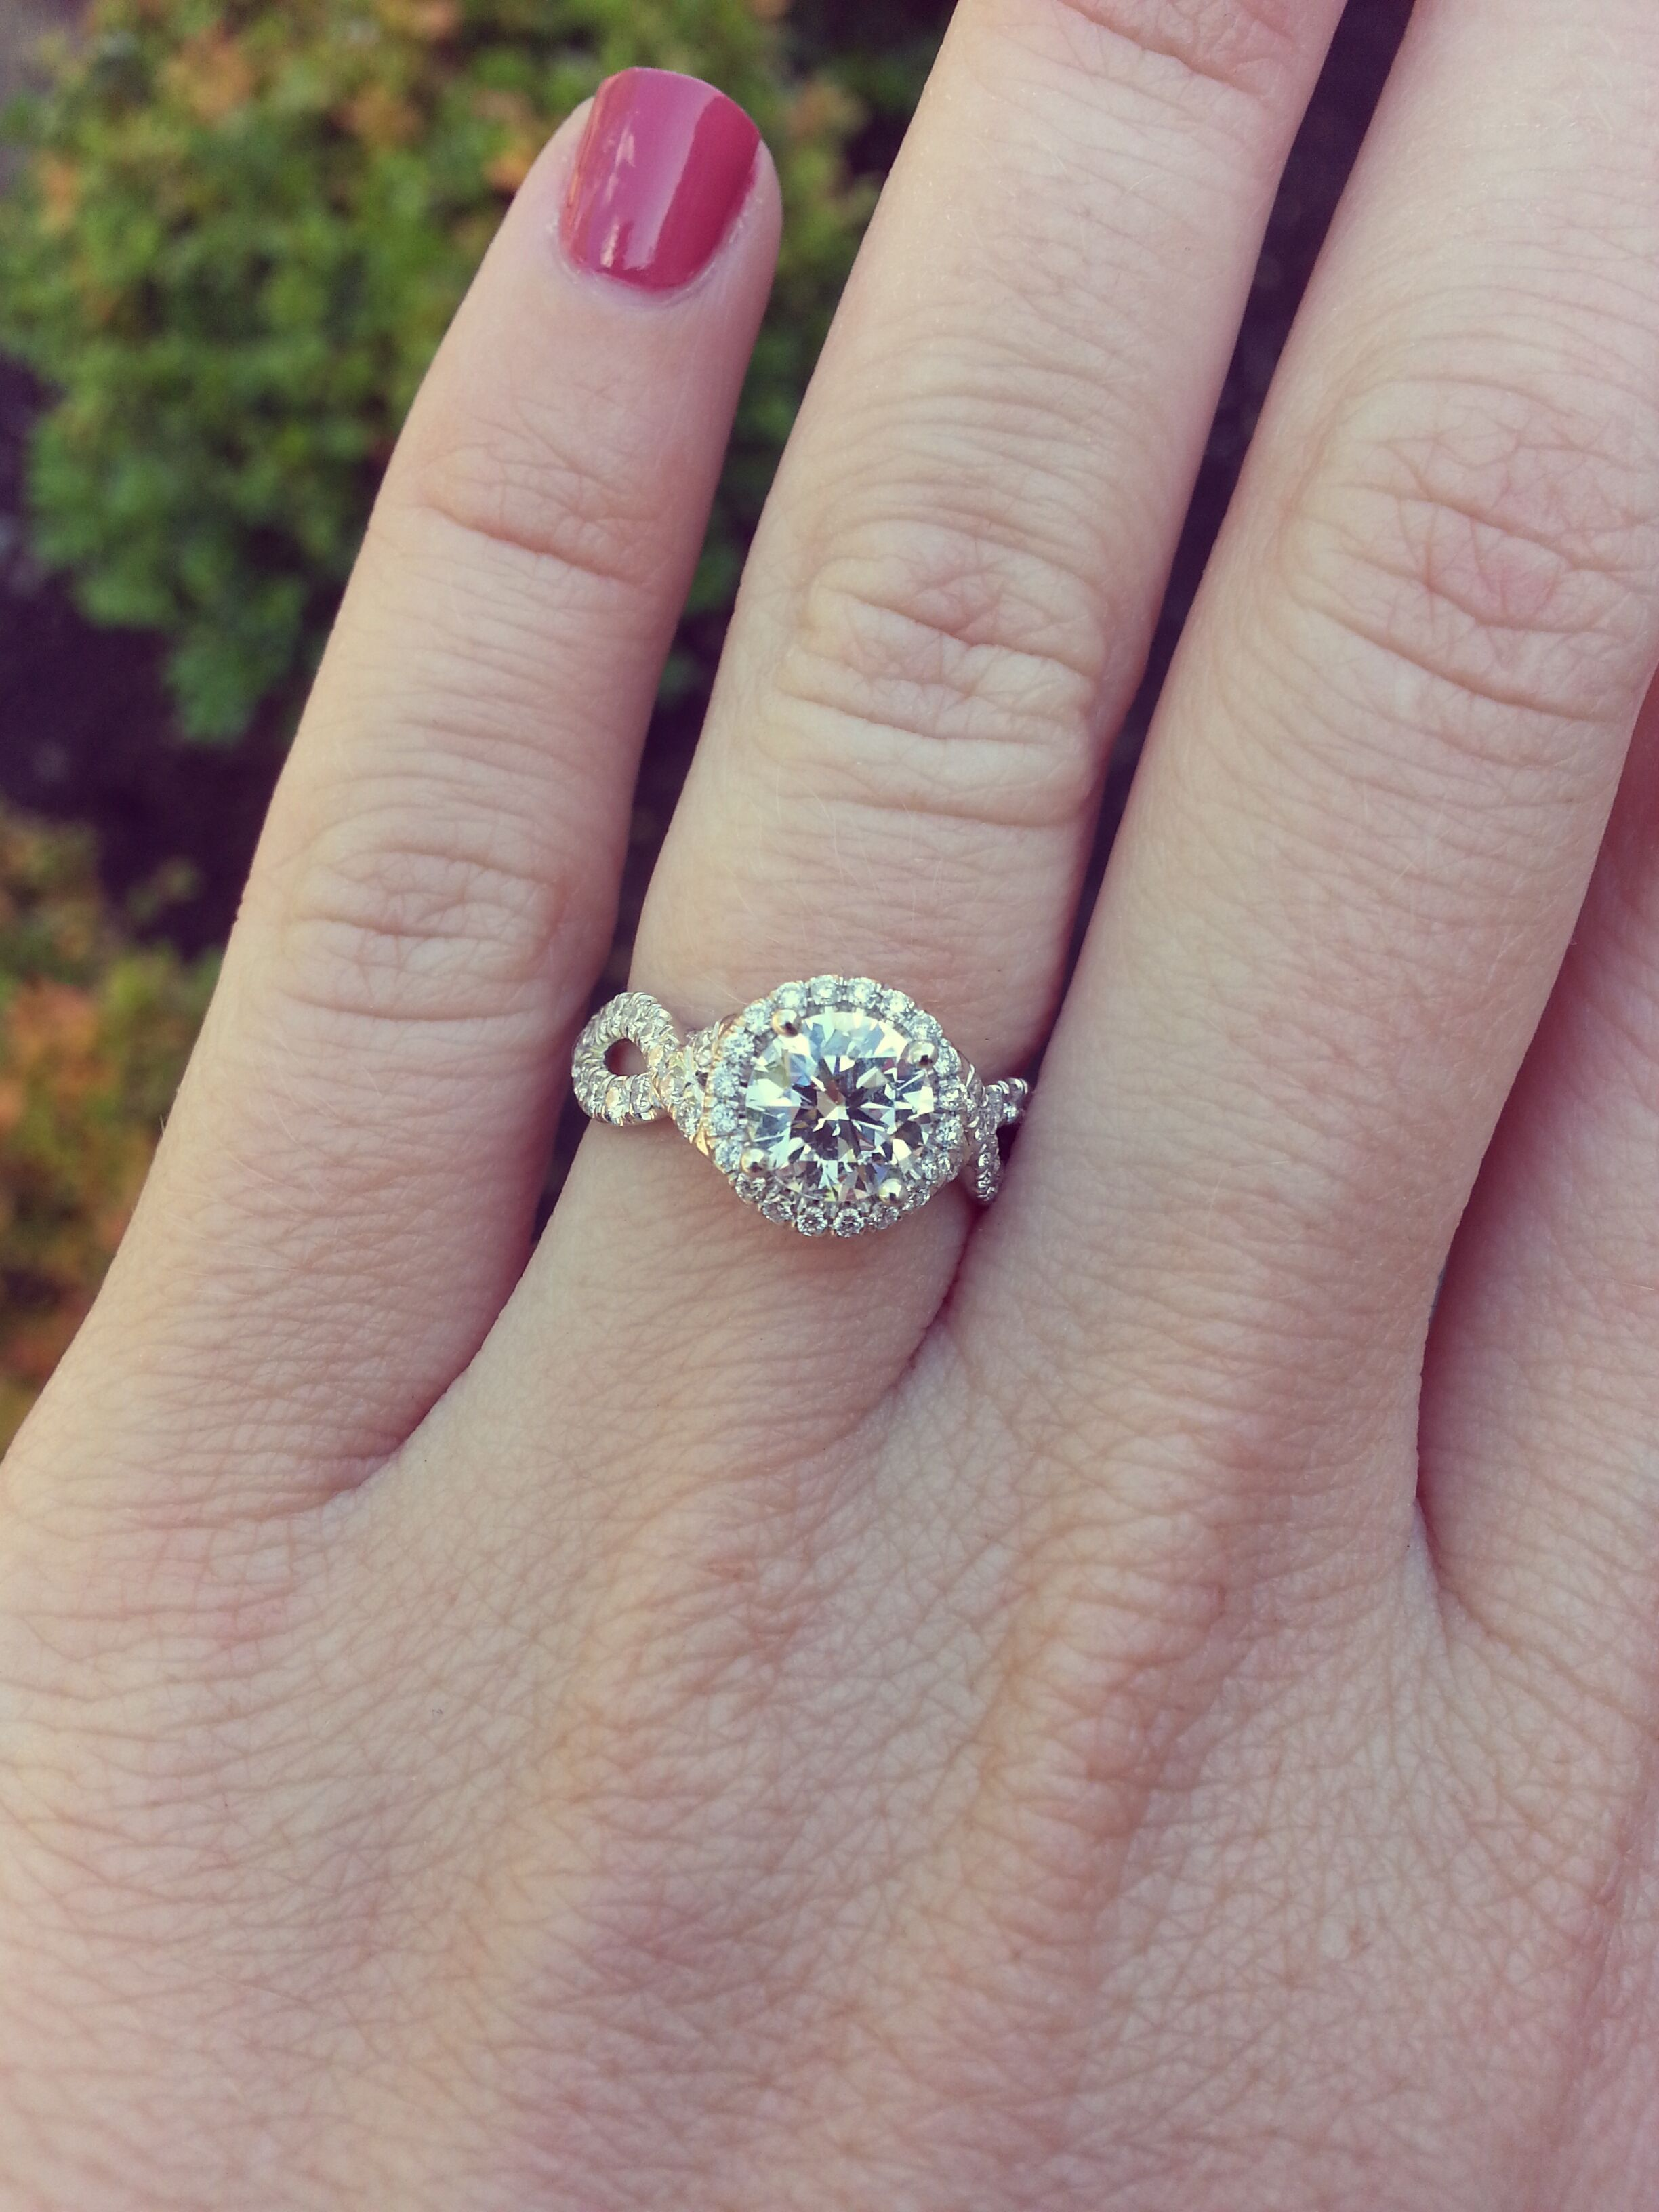 Custom Round Brilliant Halo Engagement Ring With Infinity Twist Side Bands  It's Perfect :)